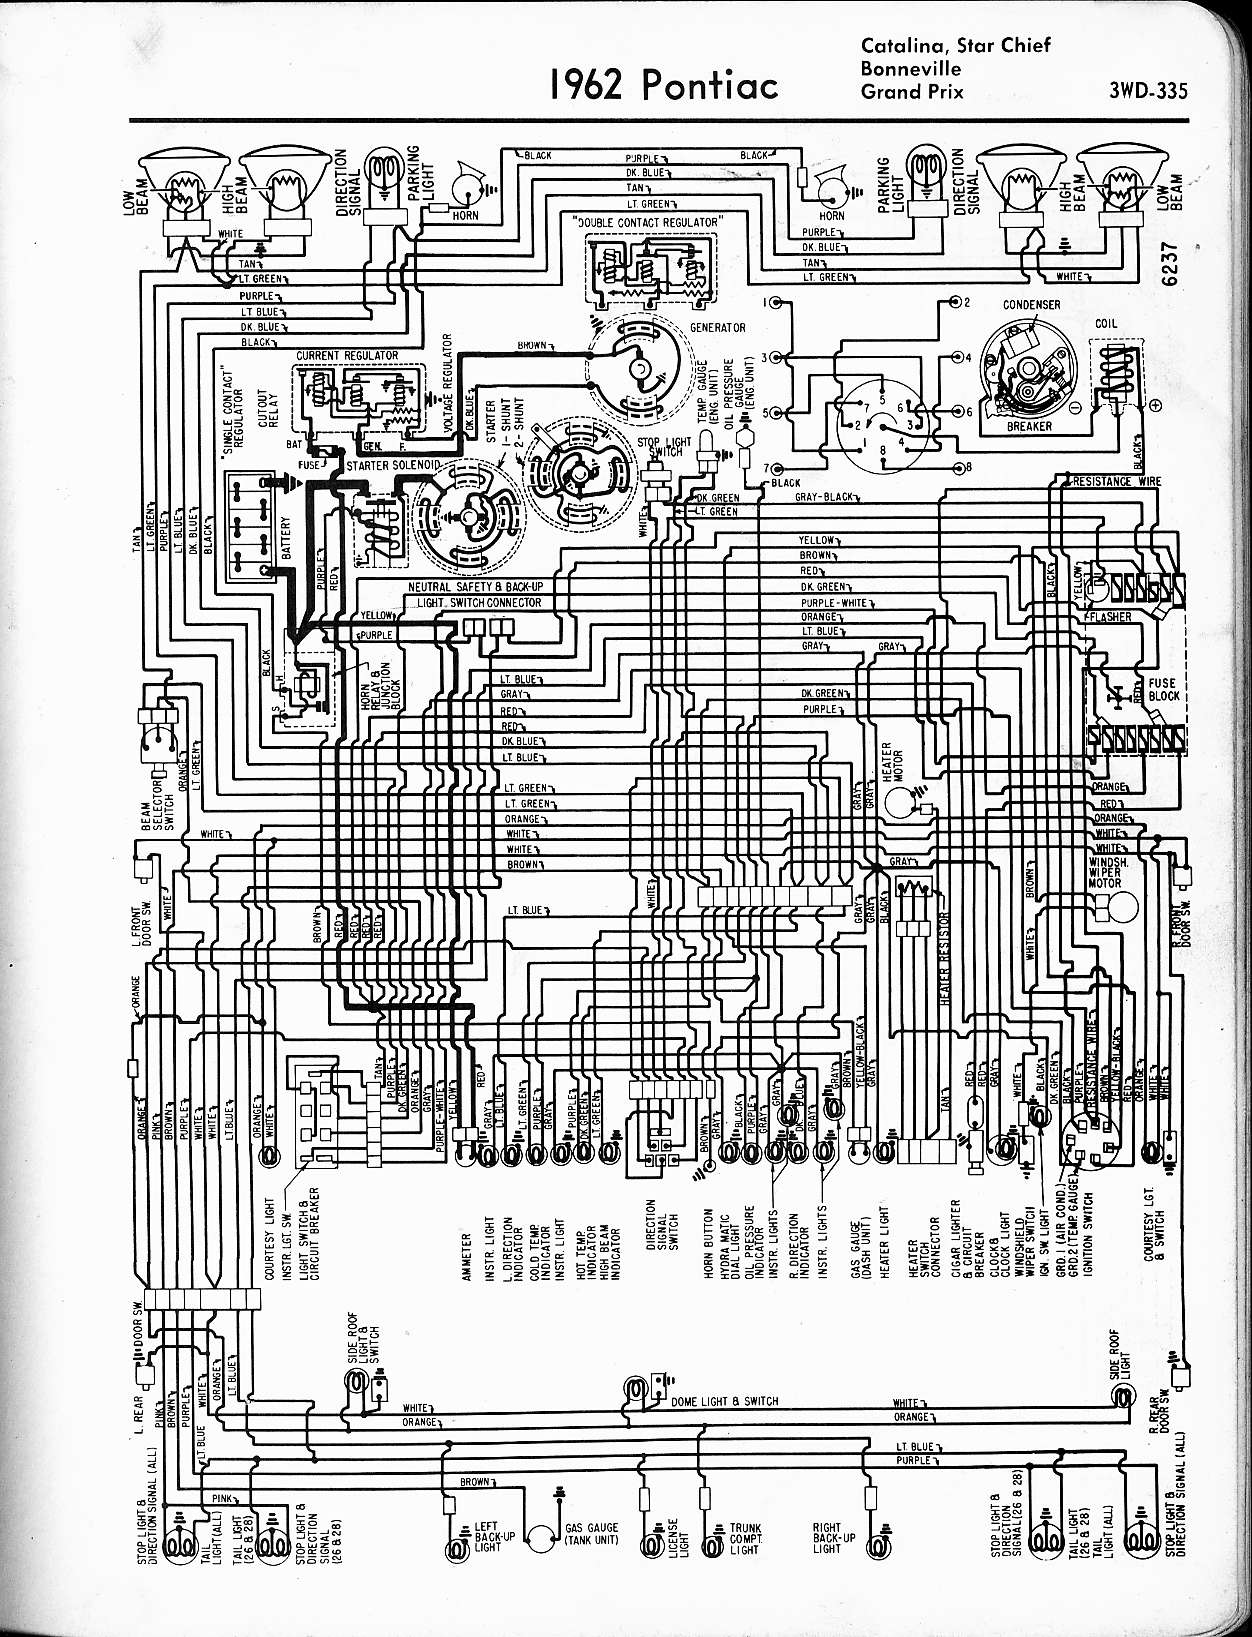 MWire5765 335 wallace racing wiring diagrams 2006 grand prix wiring diagram at readyjetset.co